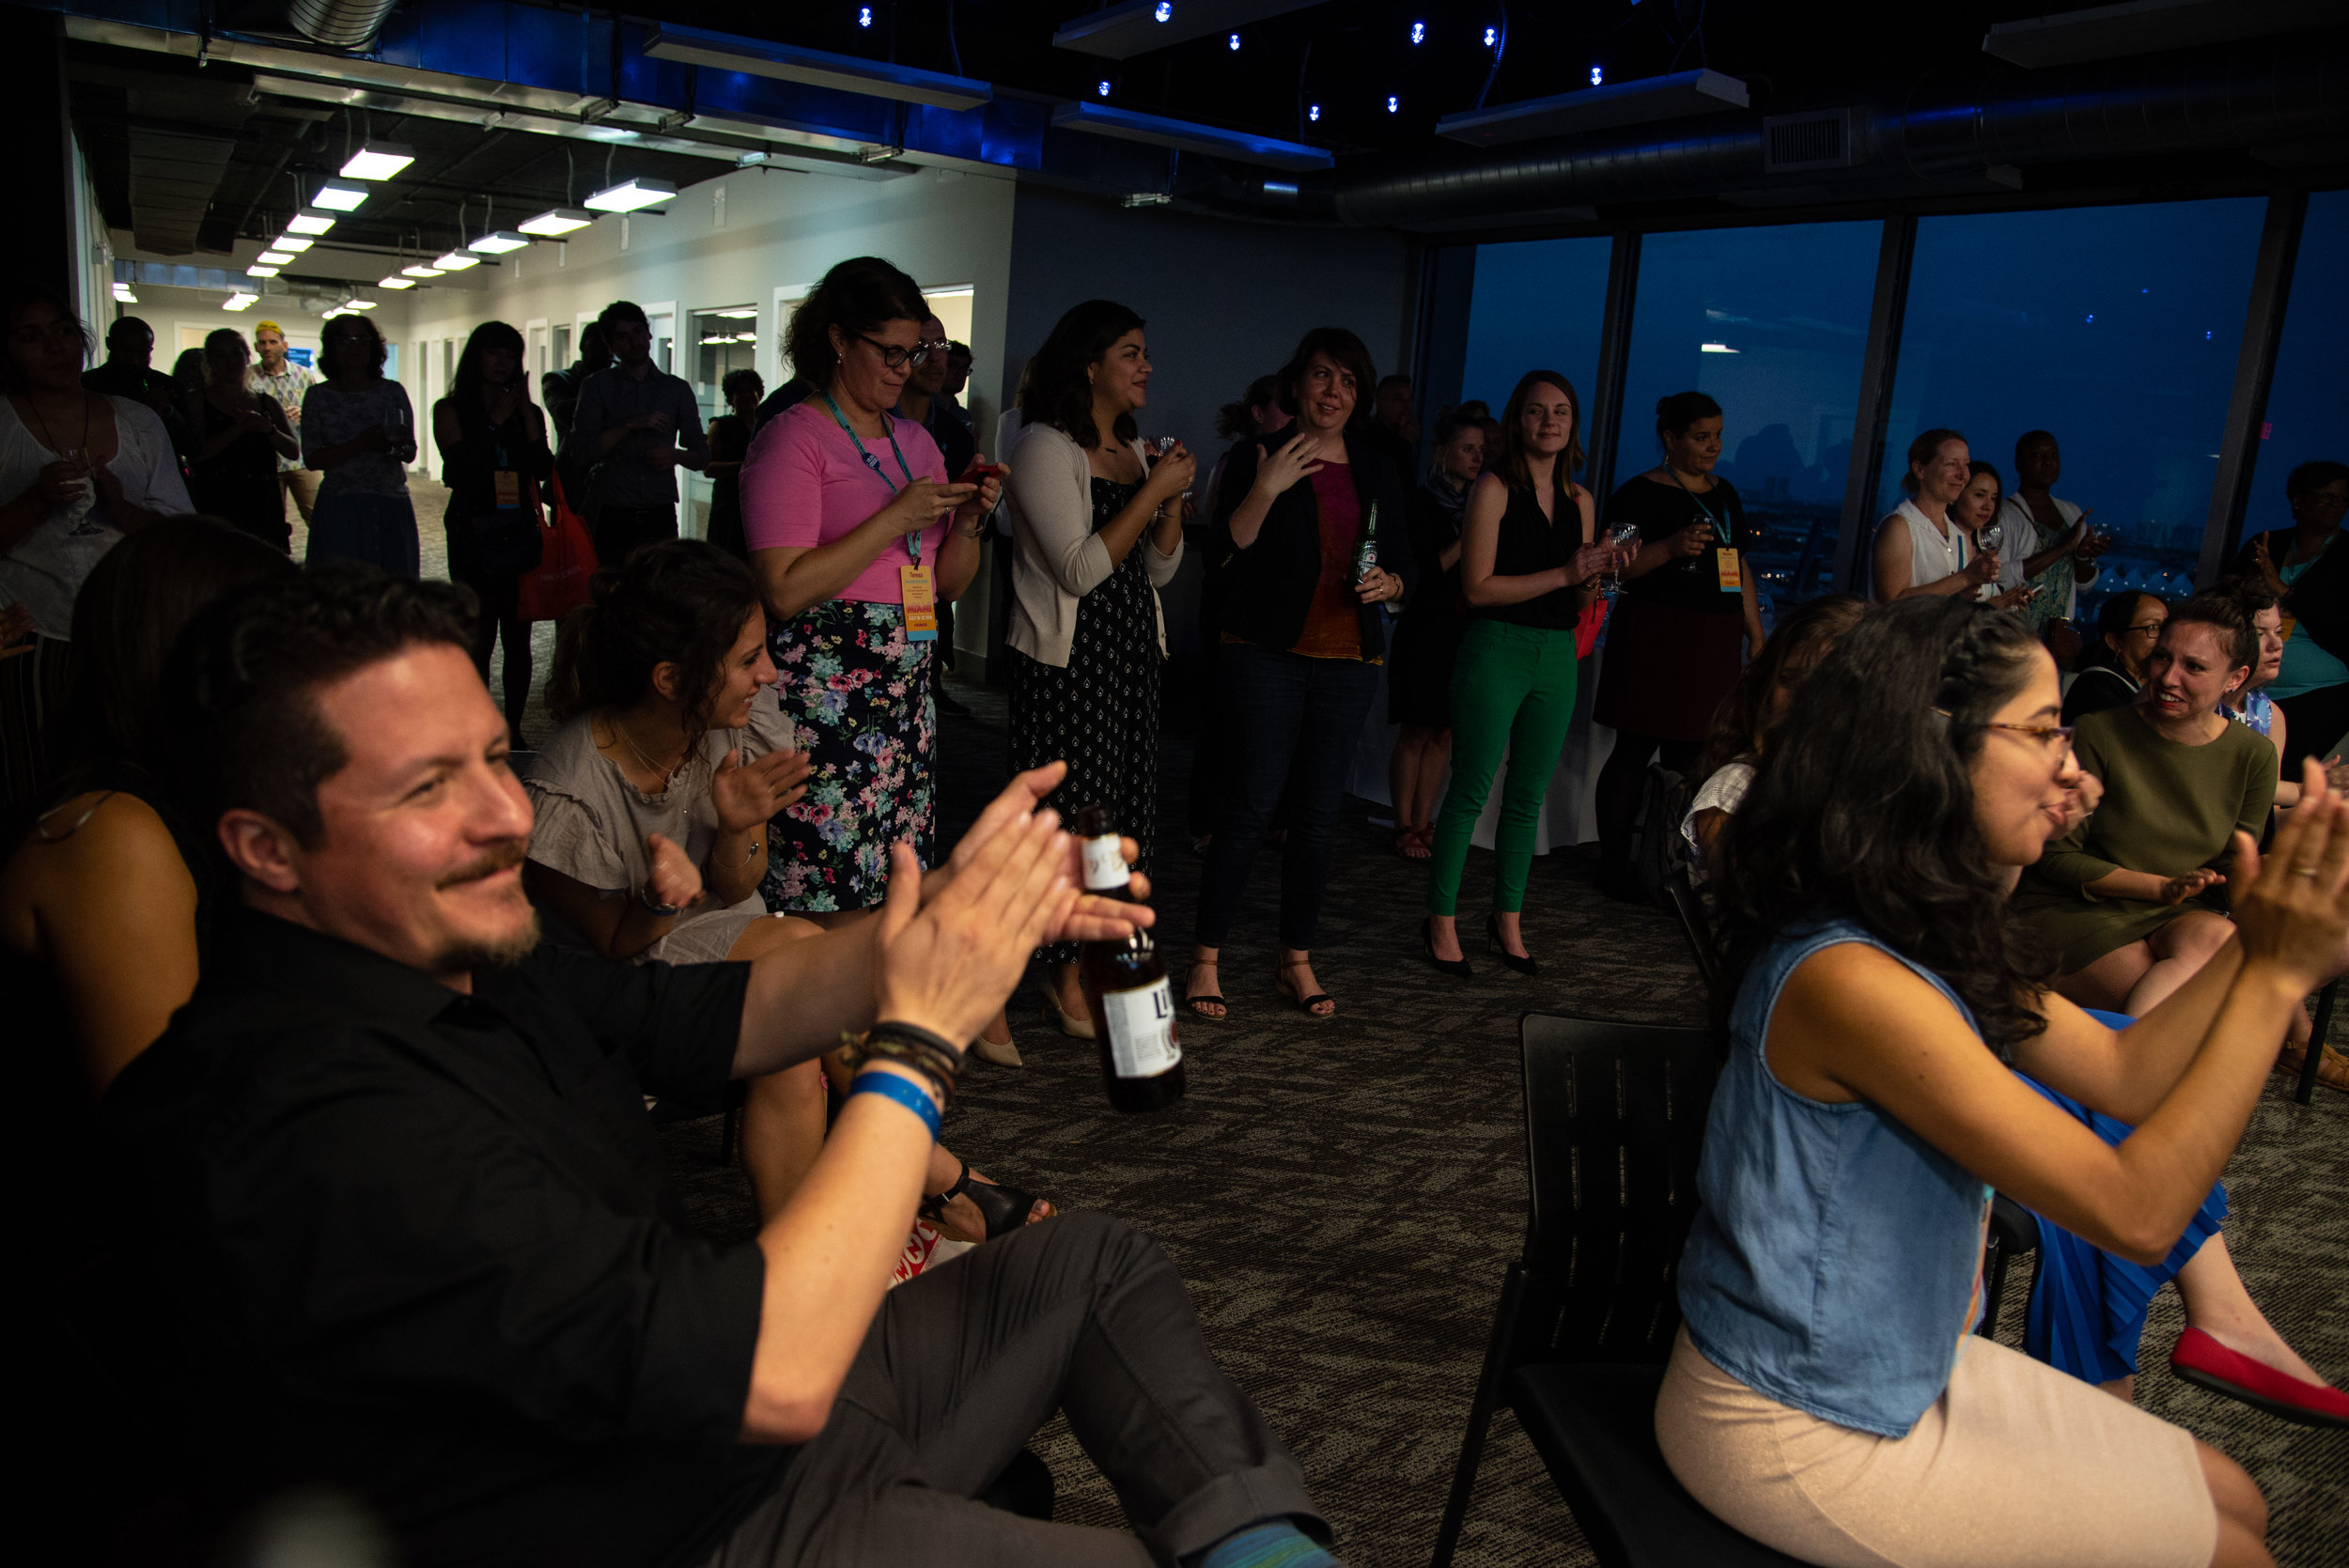 Think.Public.Media. reception at NAHJ 2018 in Miami, Florida. The receptions are a time for networking and learning more about careers in public media.